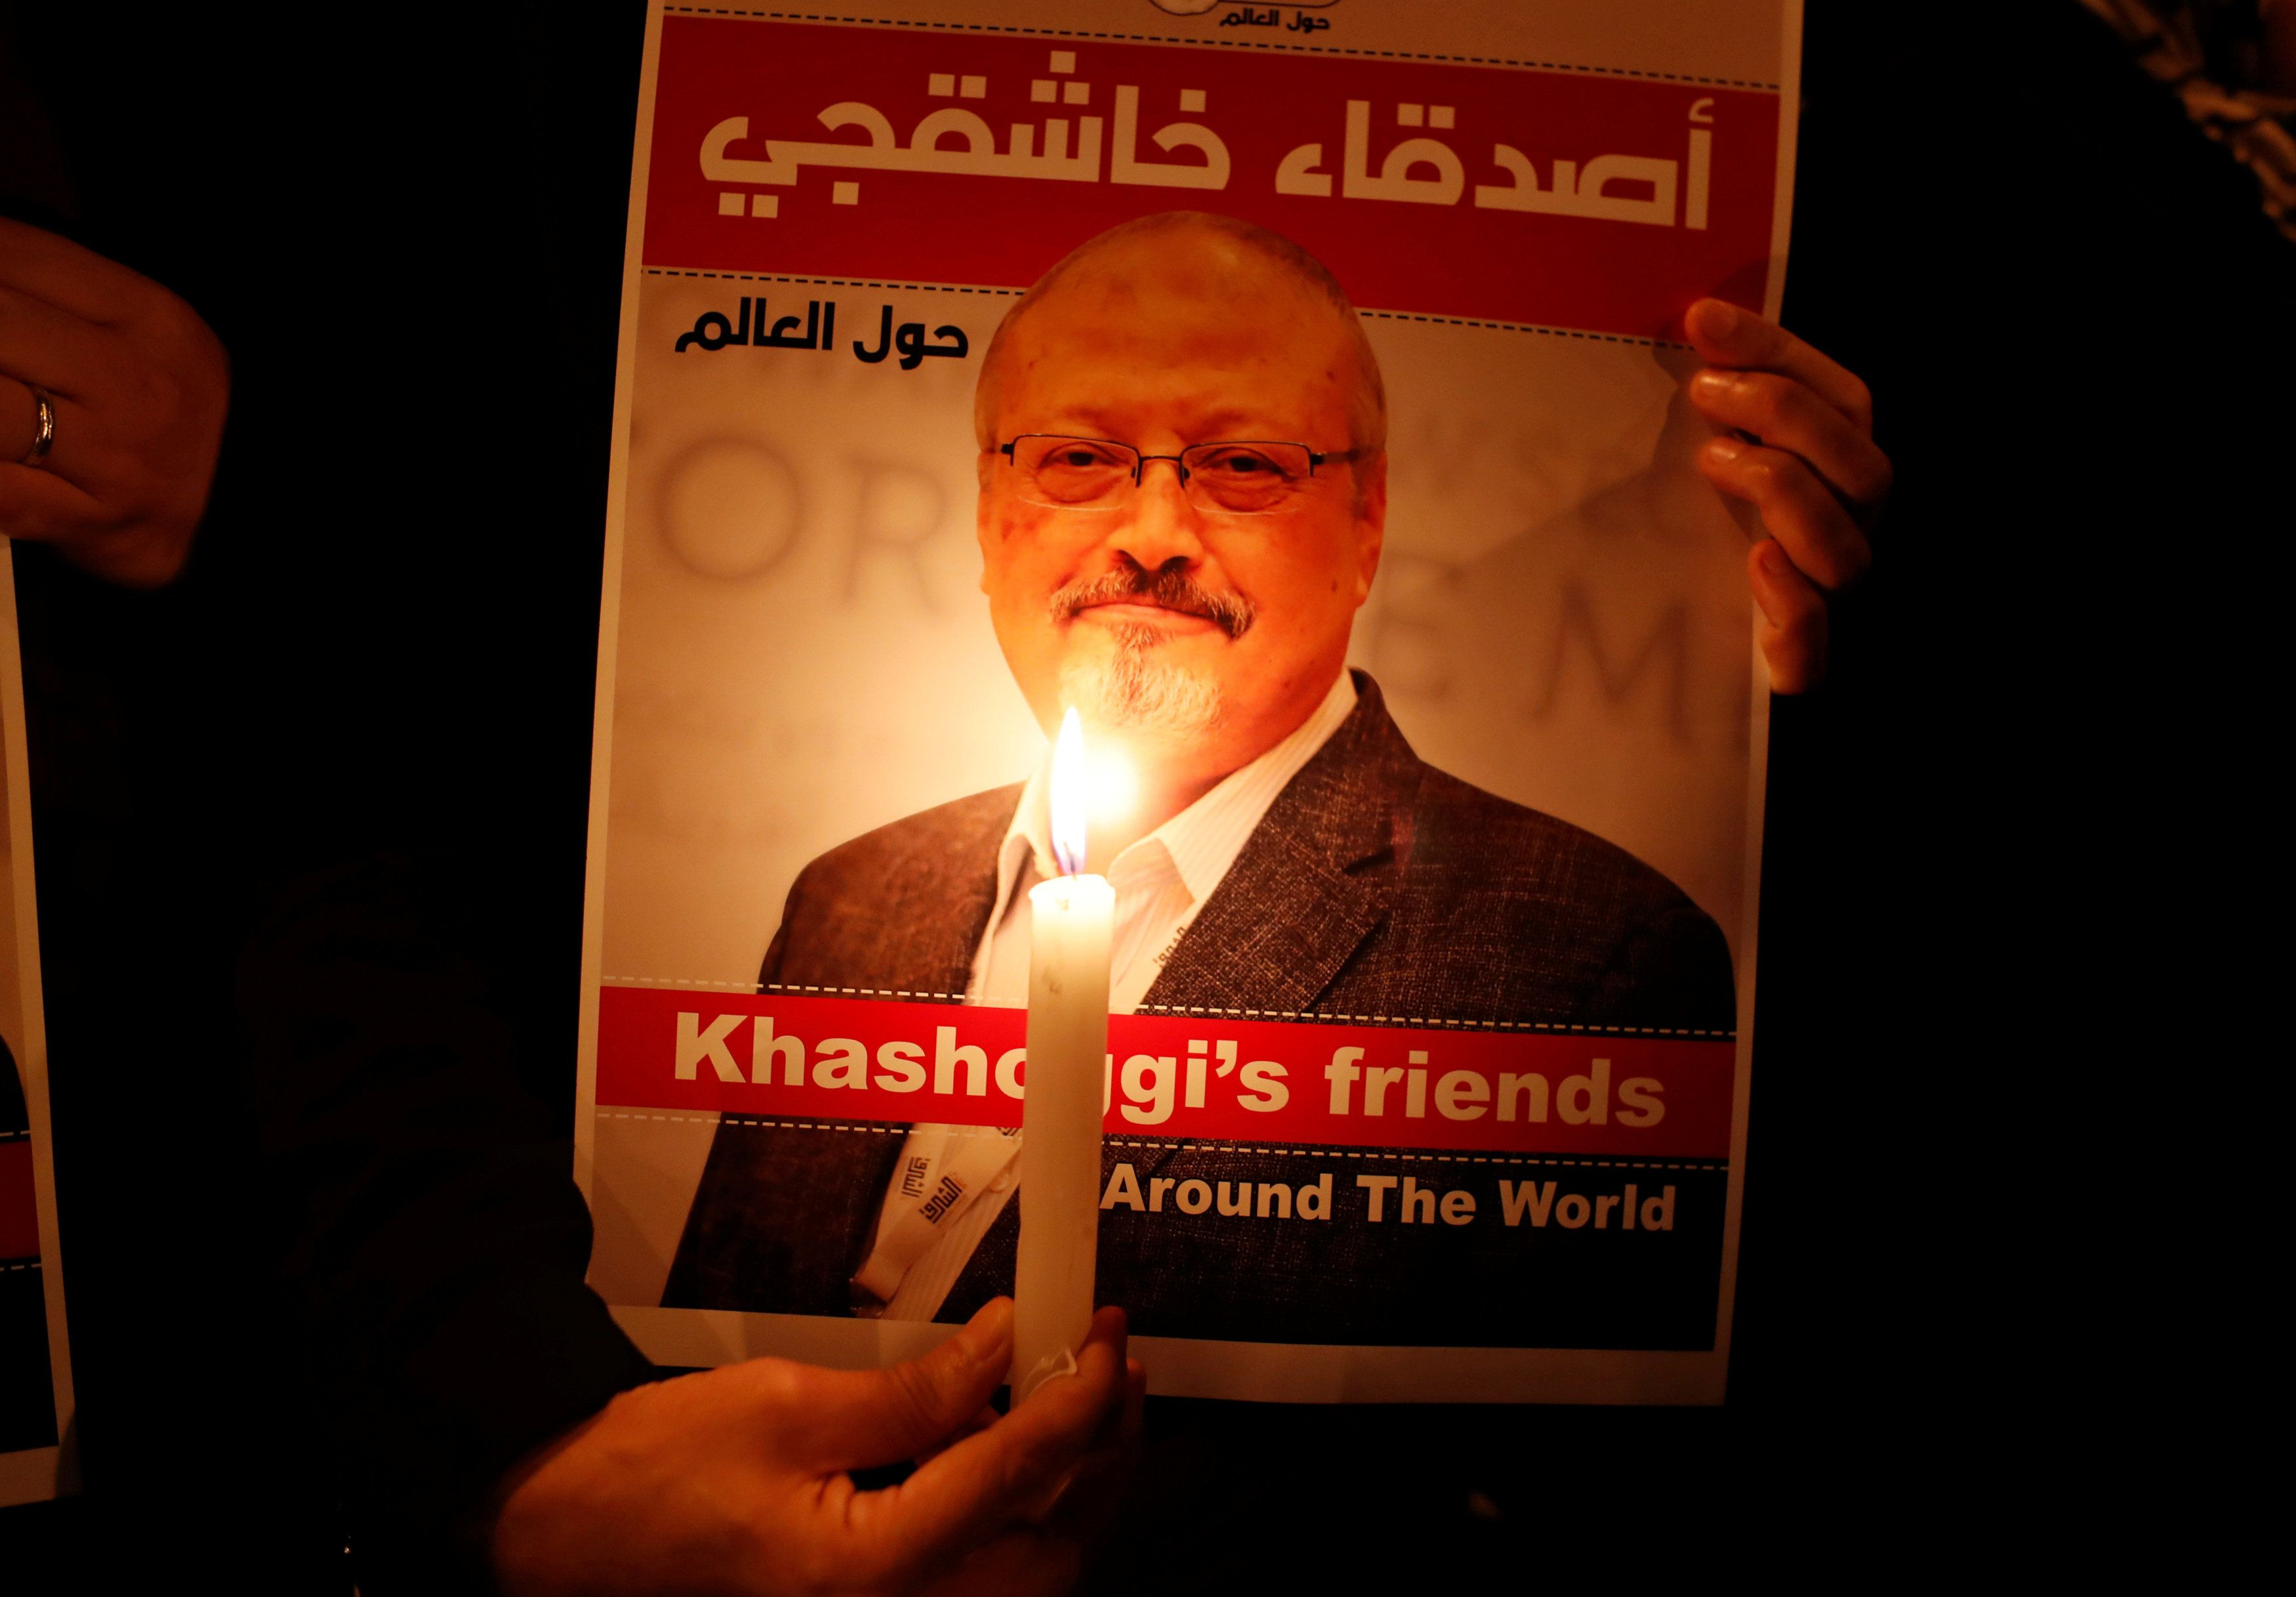 A demonstrator holds a poster with a picture of Saudi journalist Jamal Khashoggi outside the Saudi Arabia consulate in Istanbul, Turkey October 25, 2018. REUTERS/Osman Orsal